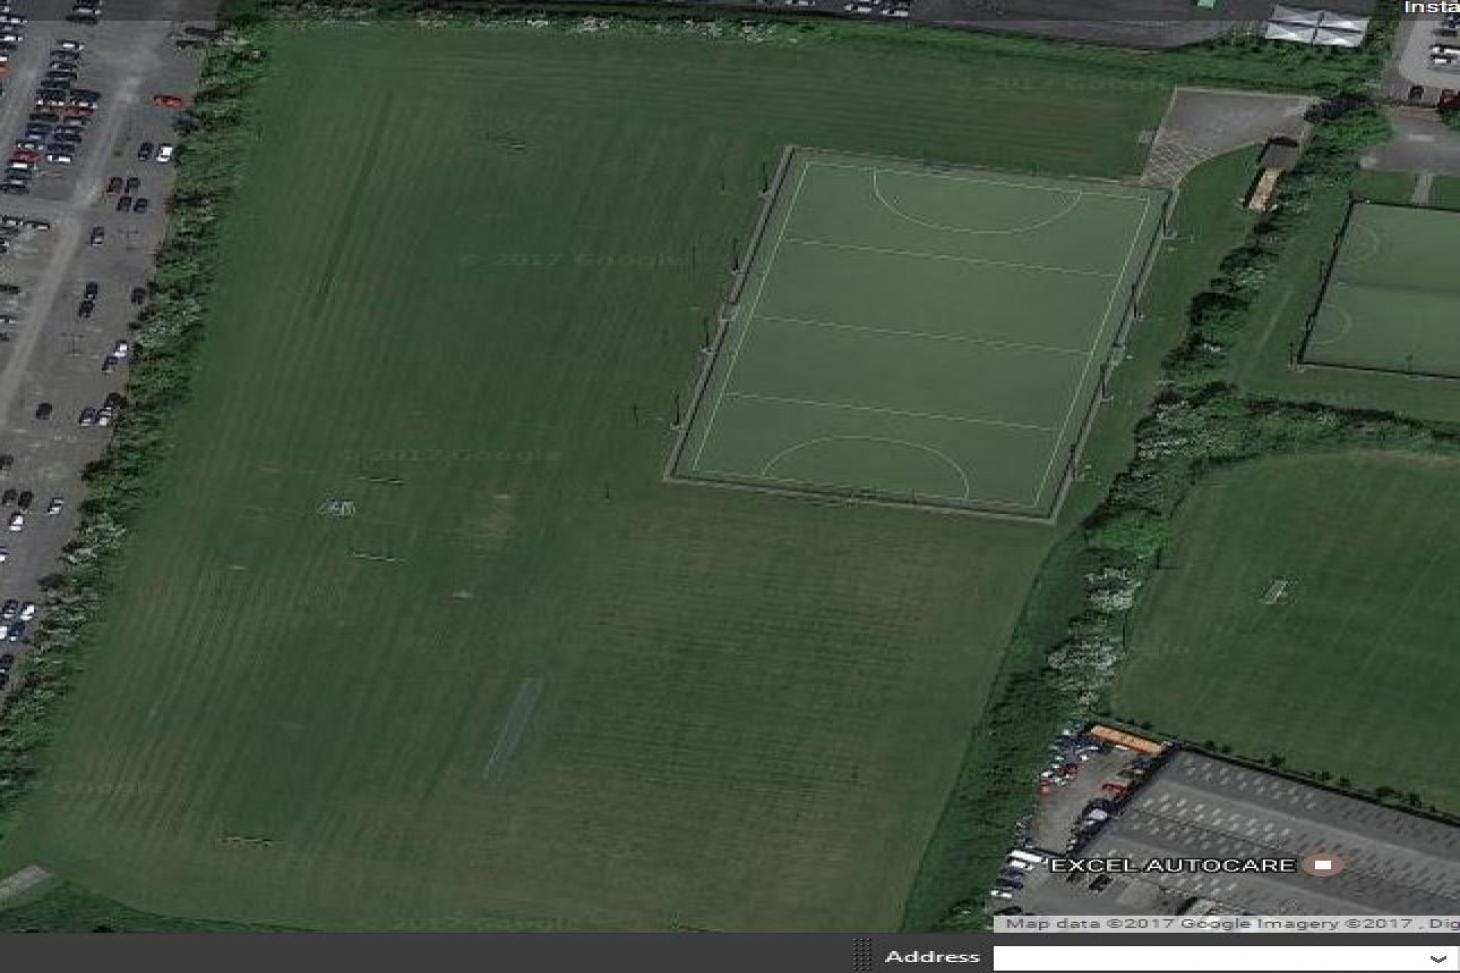 Royal College of Surgeons Sports Grounds 11 a side | Grass football pitch